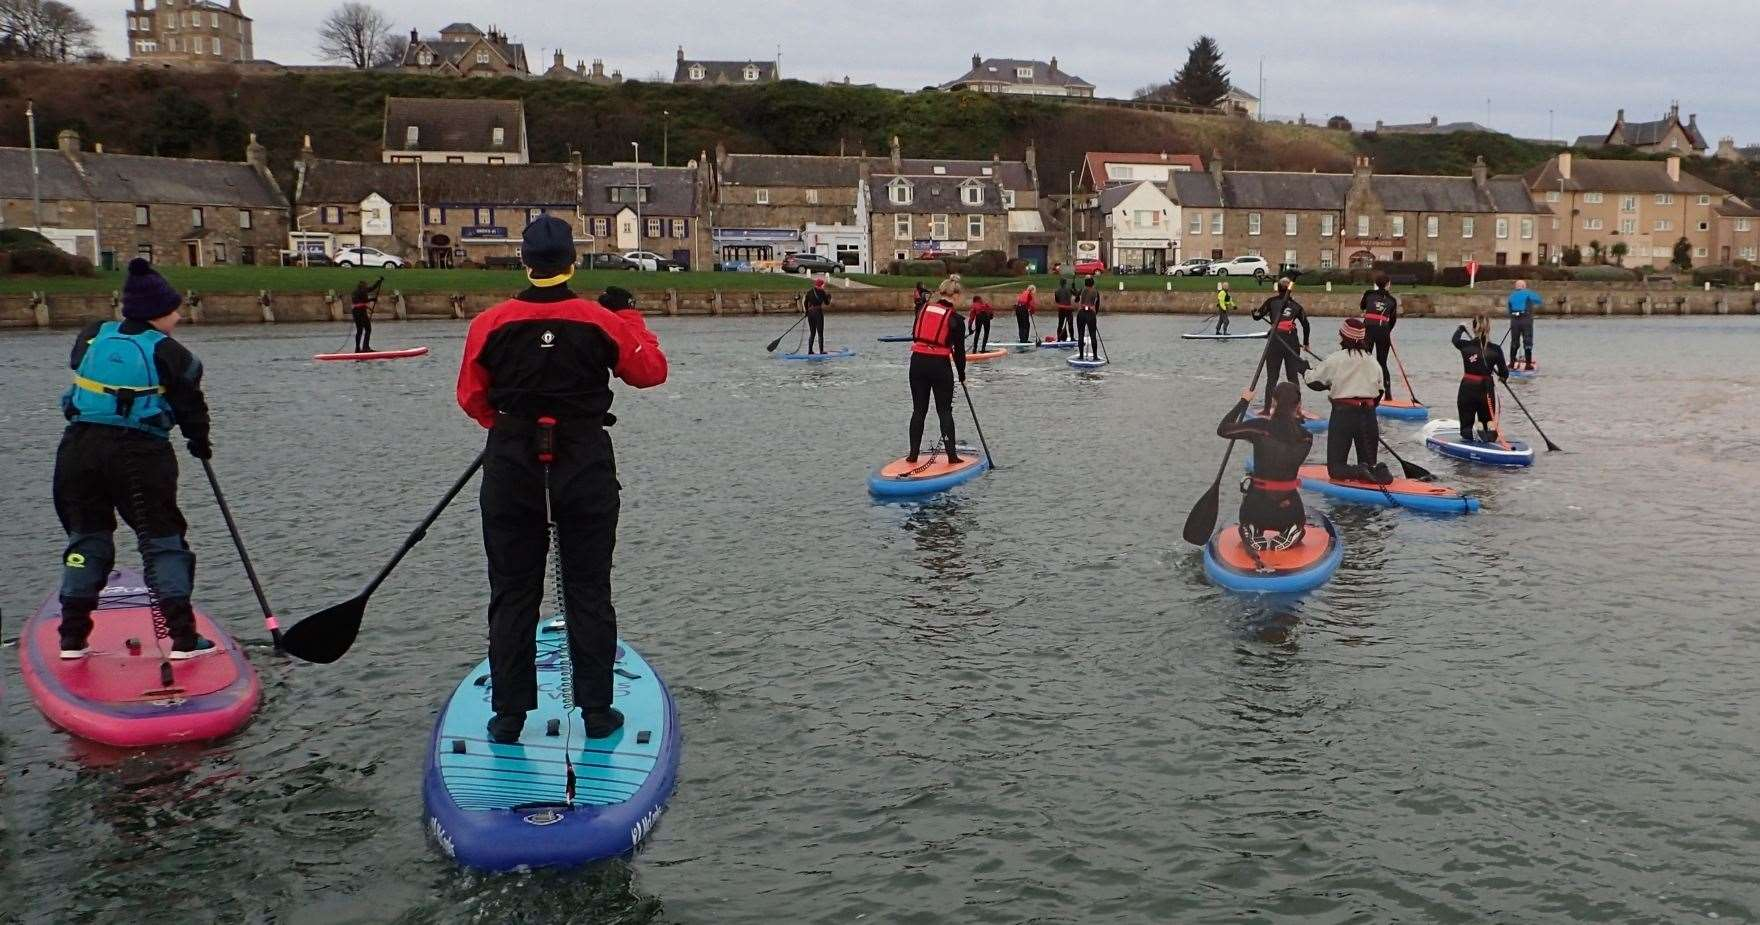 Lossiemouth-based Moray SUP Club has attracted more than 70 members since setting up in April.